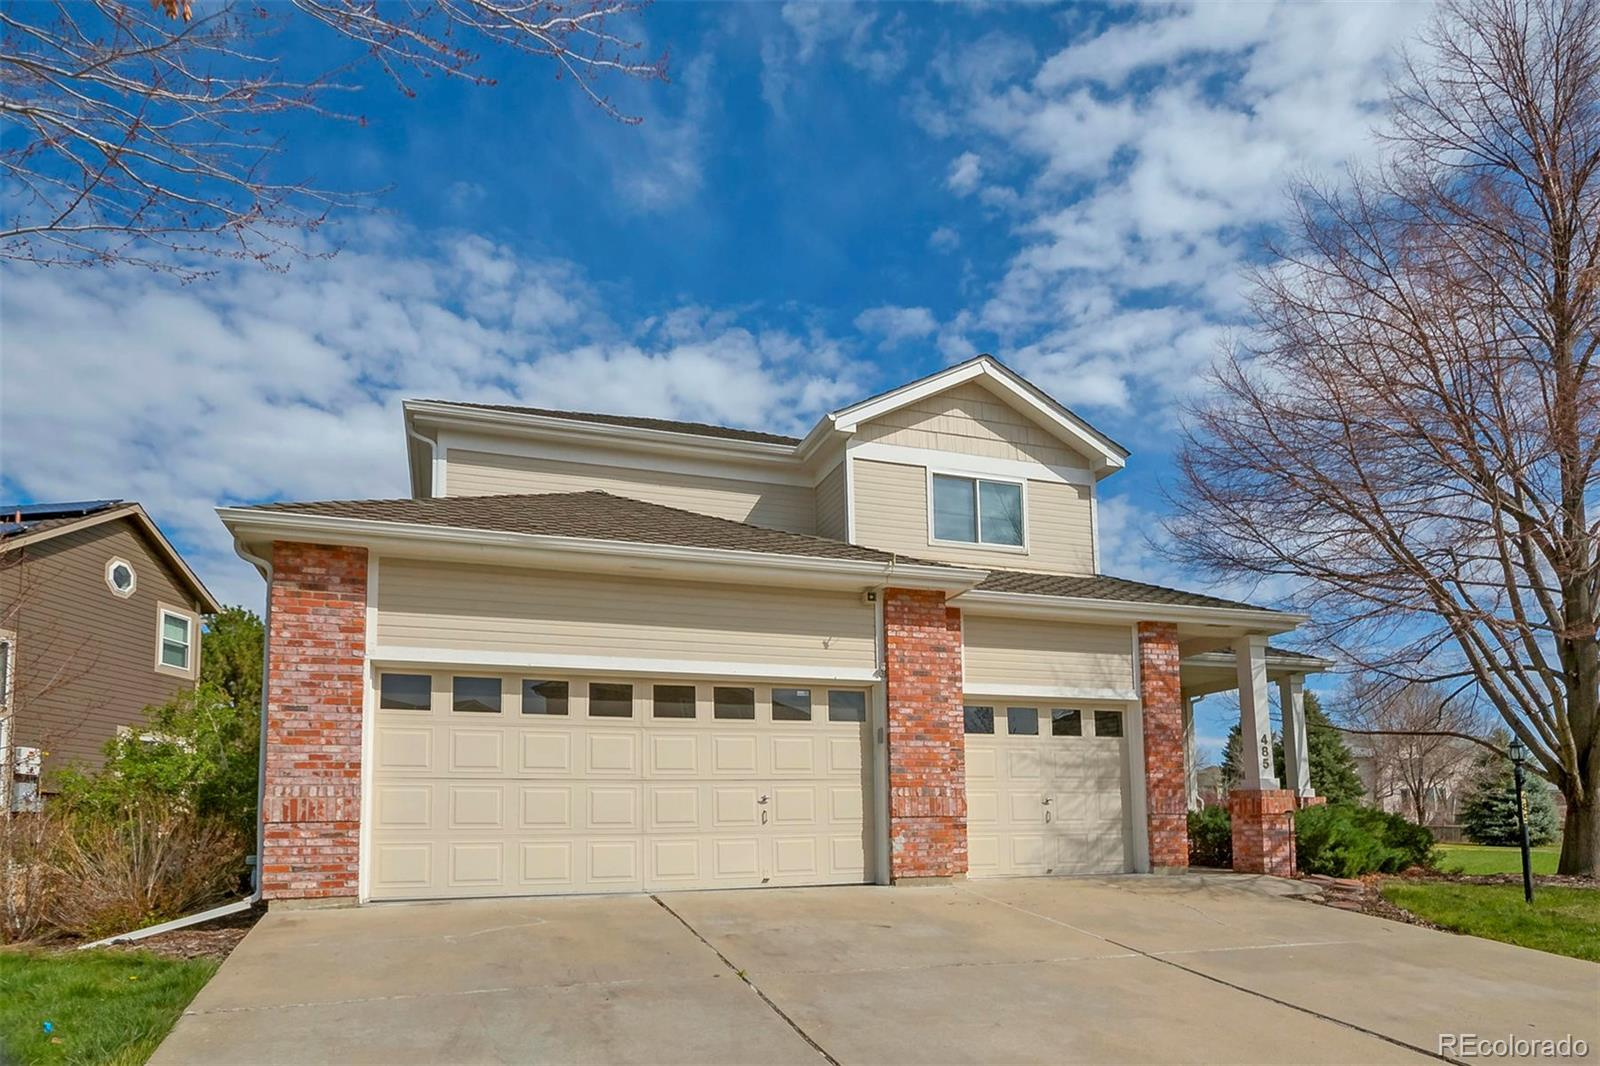 485 Golden Eagle Drive Property Photo - Broomfield, CO real estate listing